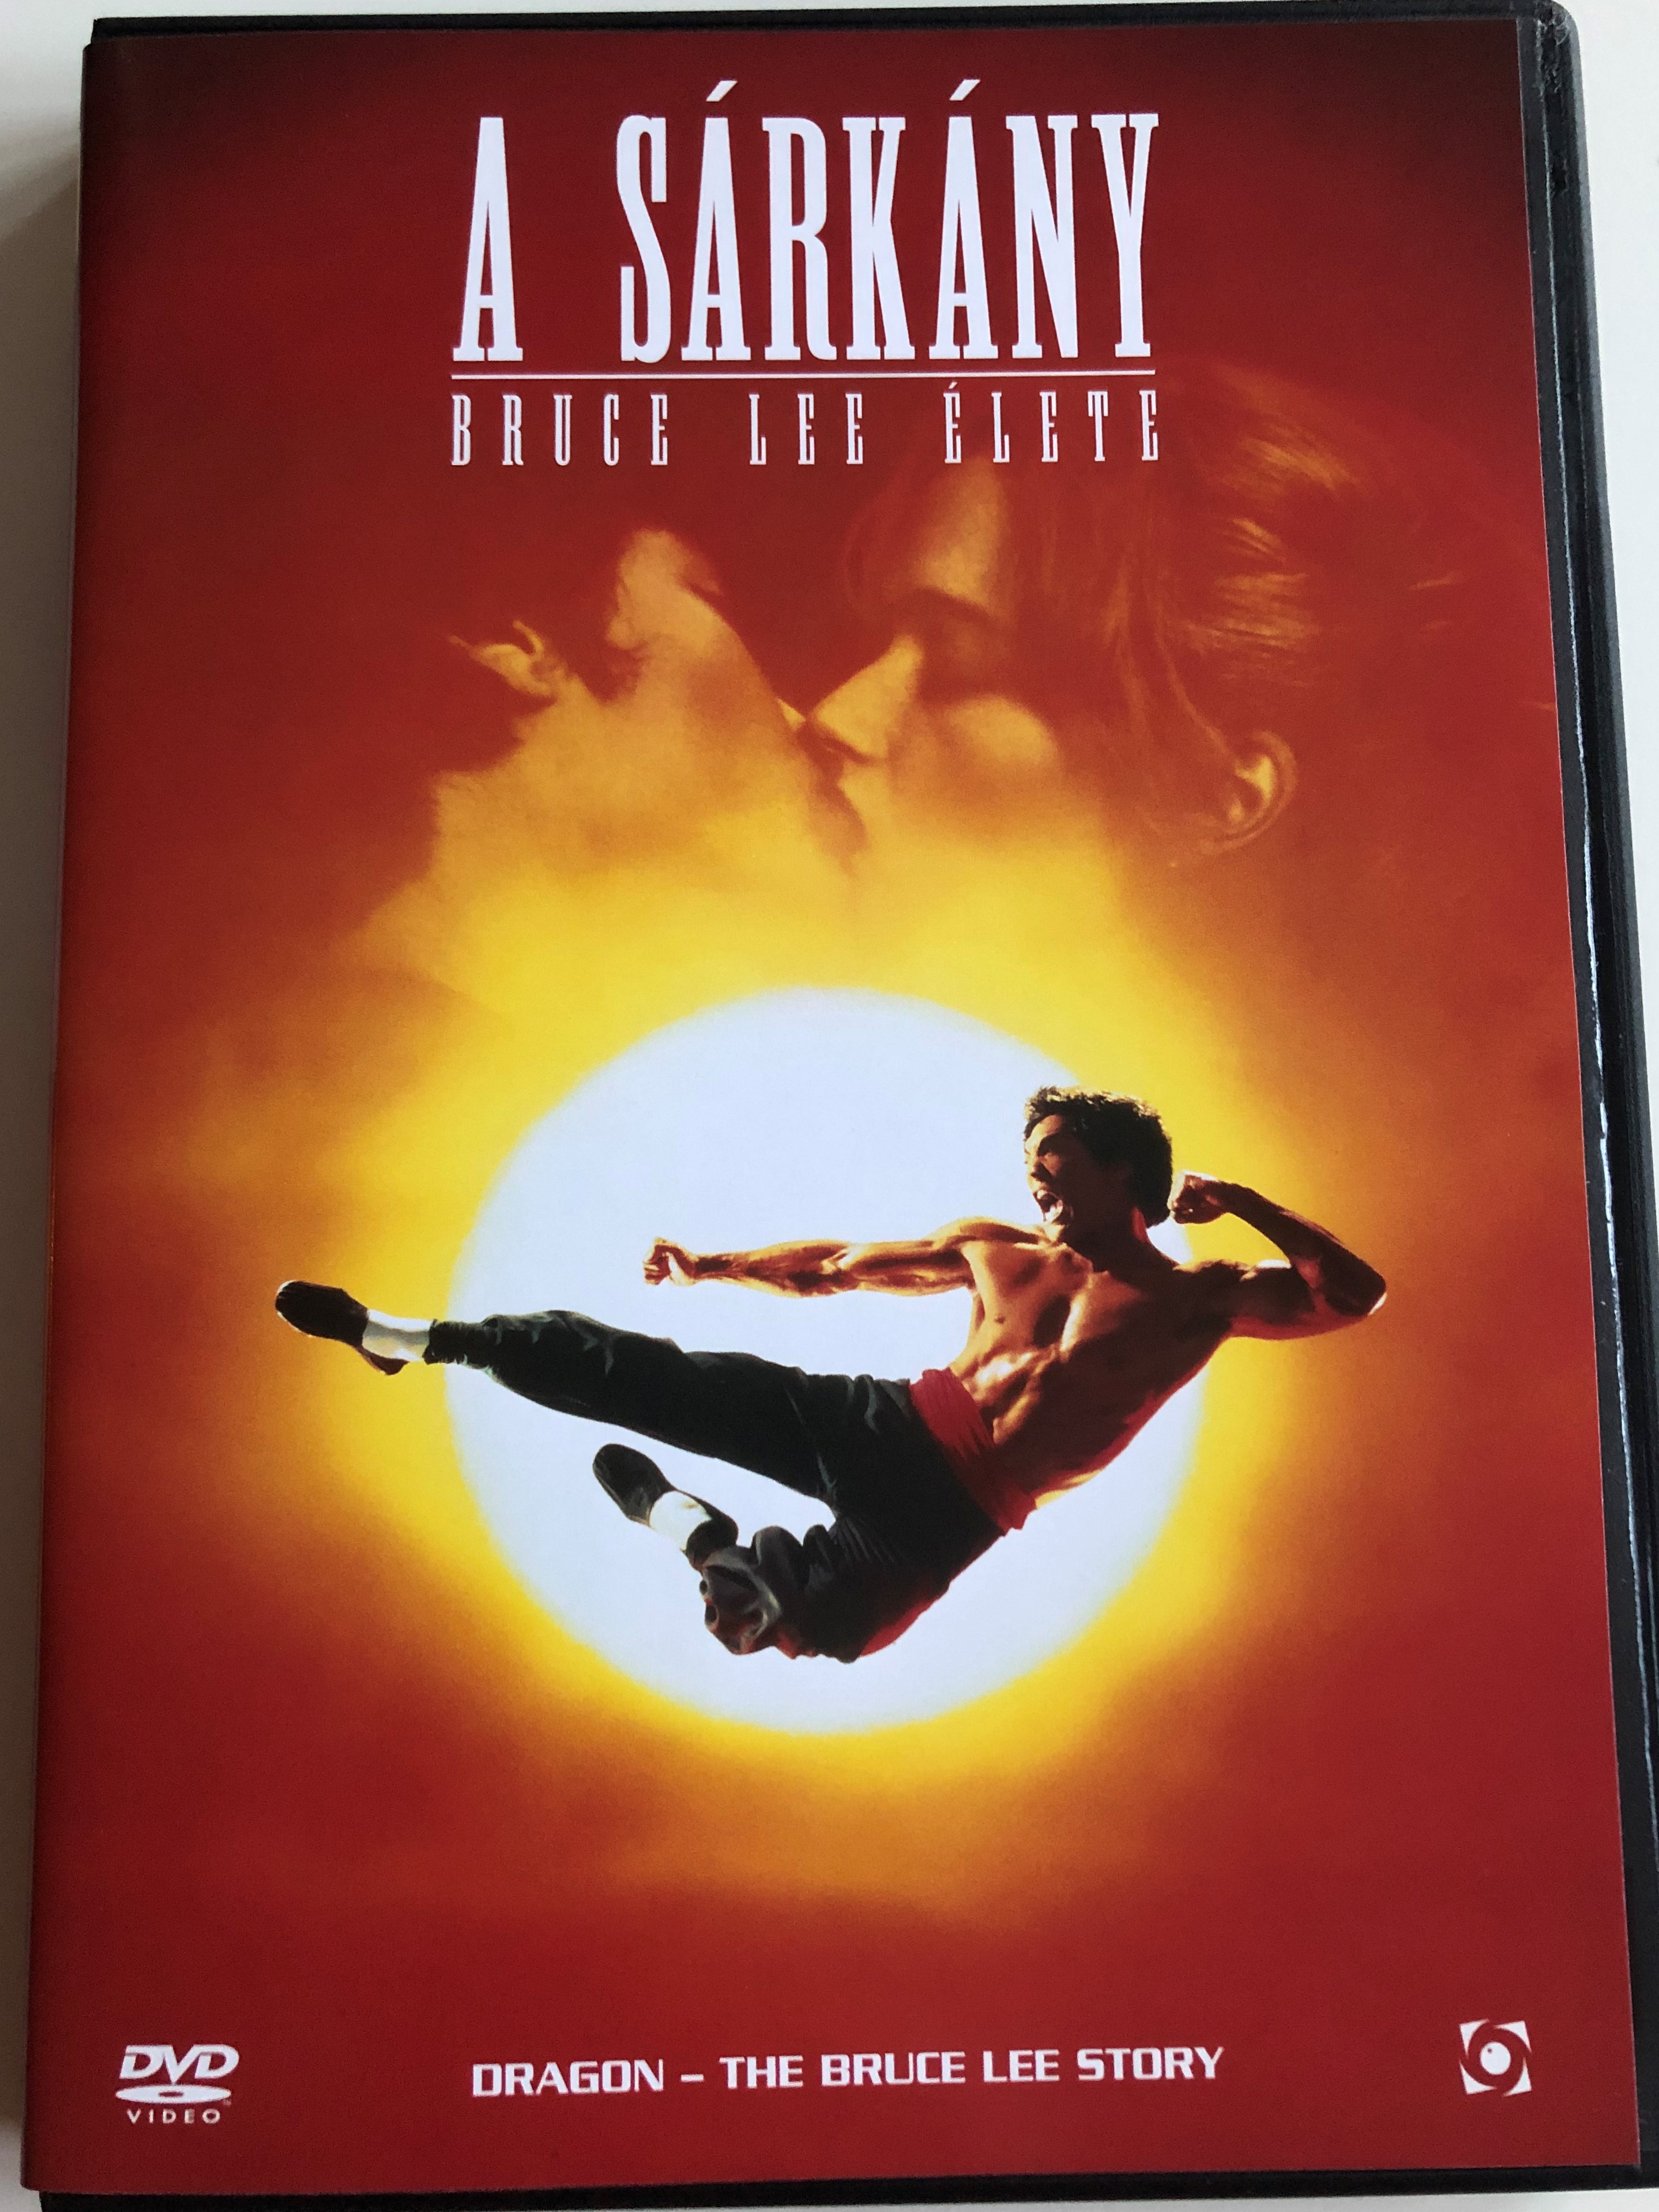 dragon-the-bruce-lee-story-dvd-a-s-rk-ny-bruce-lee-lete-1.jpg